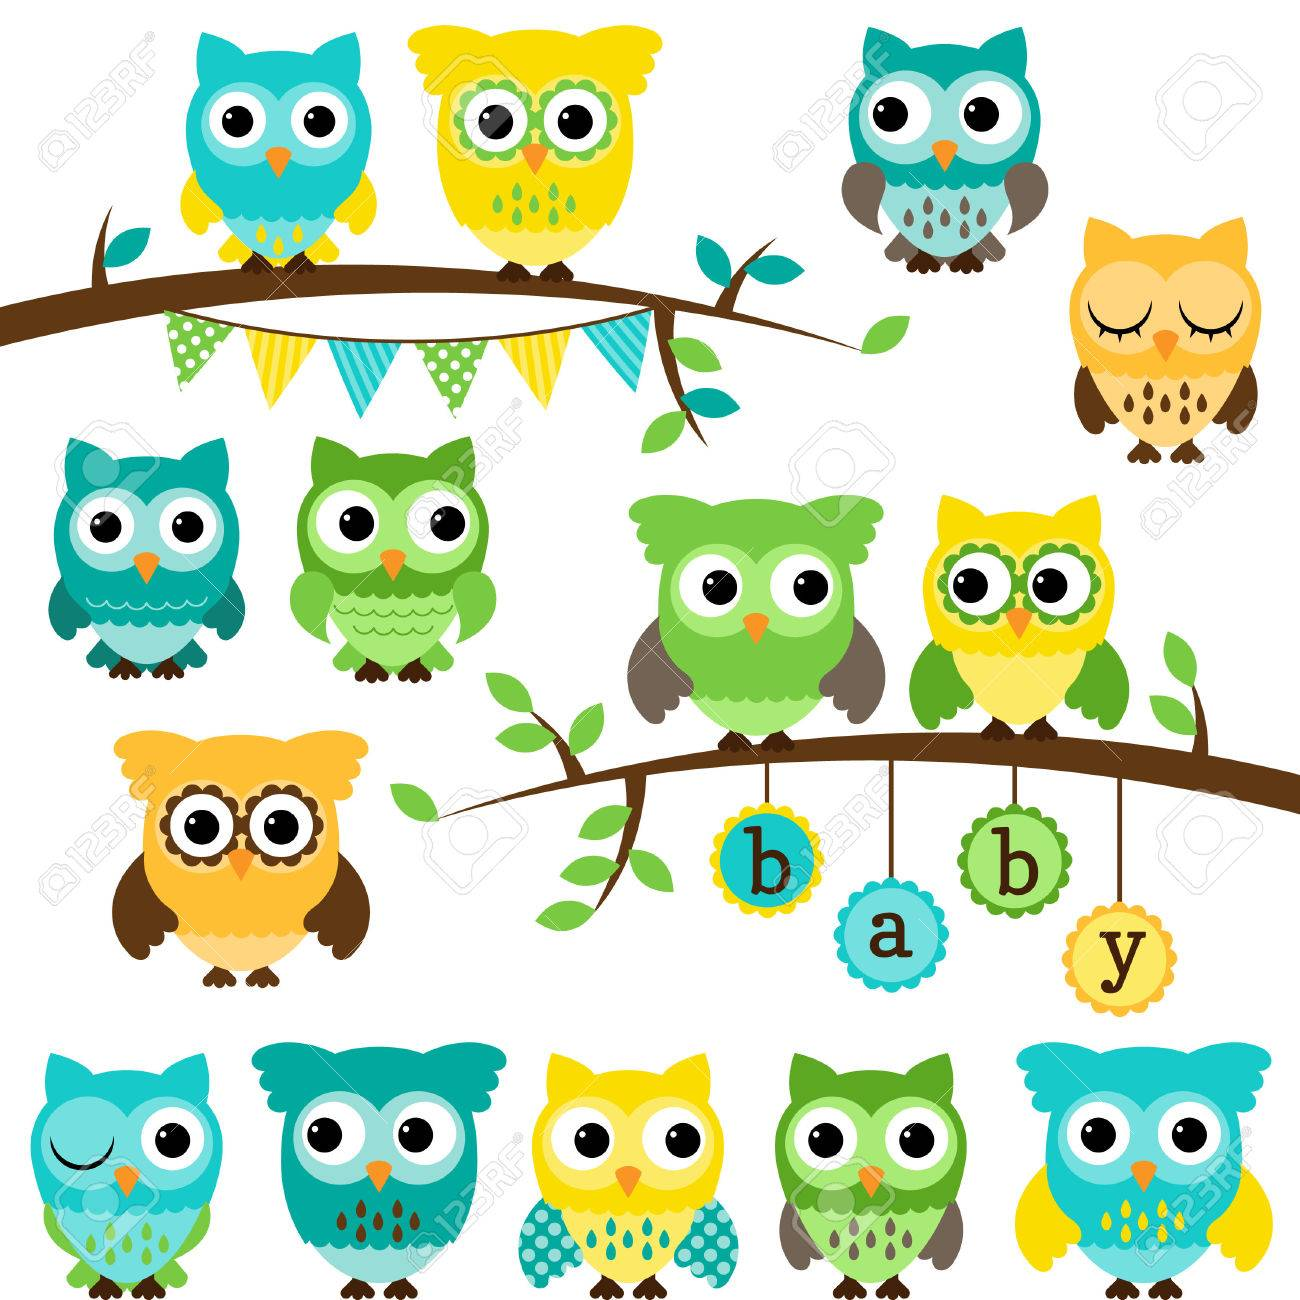 Collection Of Gender Neutral Baby Shower Themed Owls And Branches Royalty Free Cliparts Vectors And Stock Illustration Image 29821660